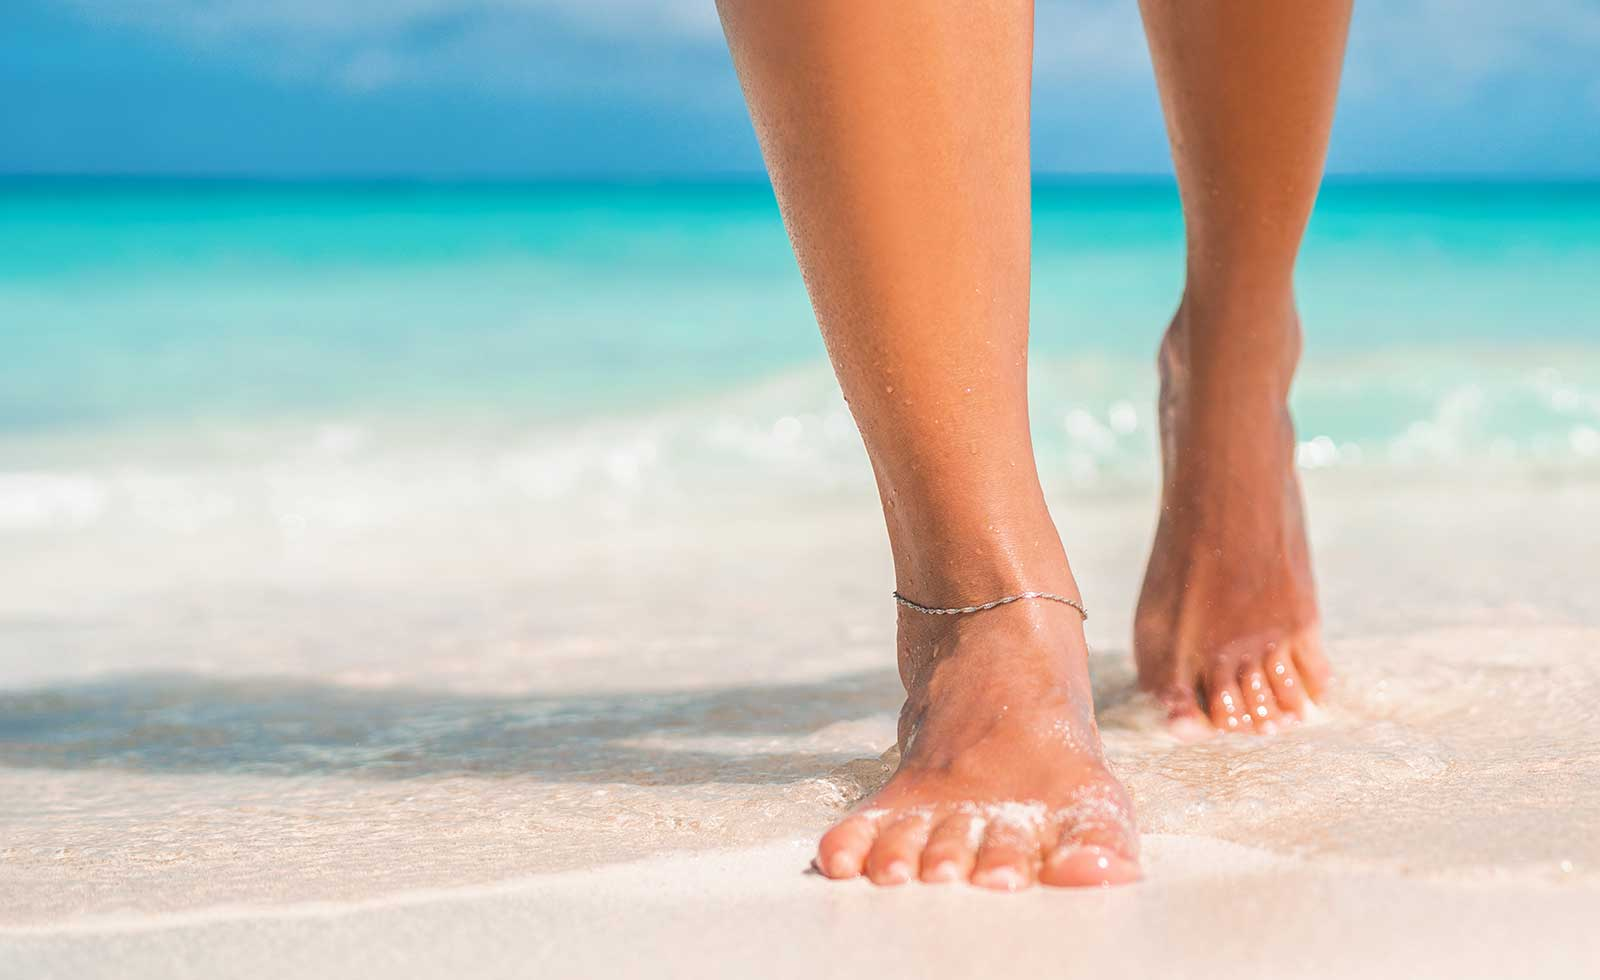 Feet condition and foot care treatments